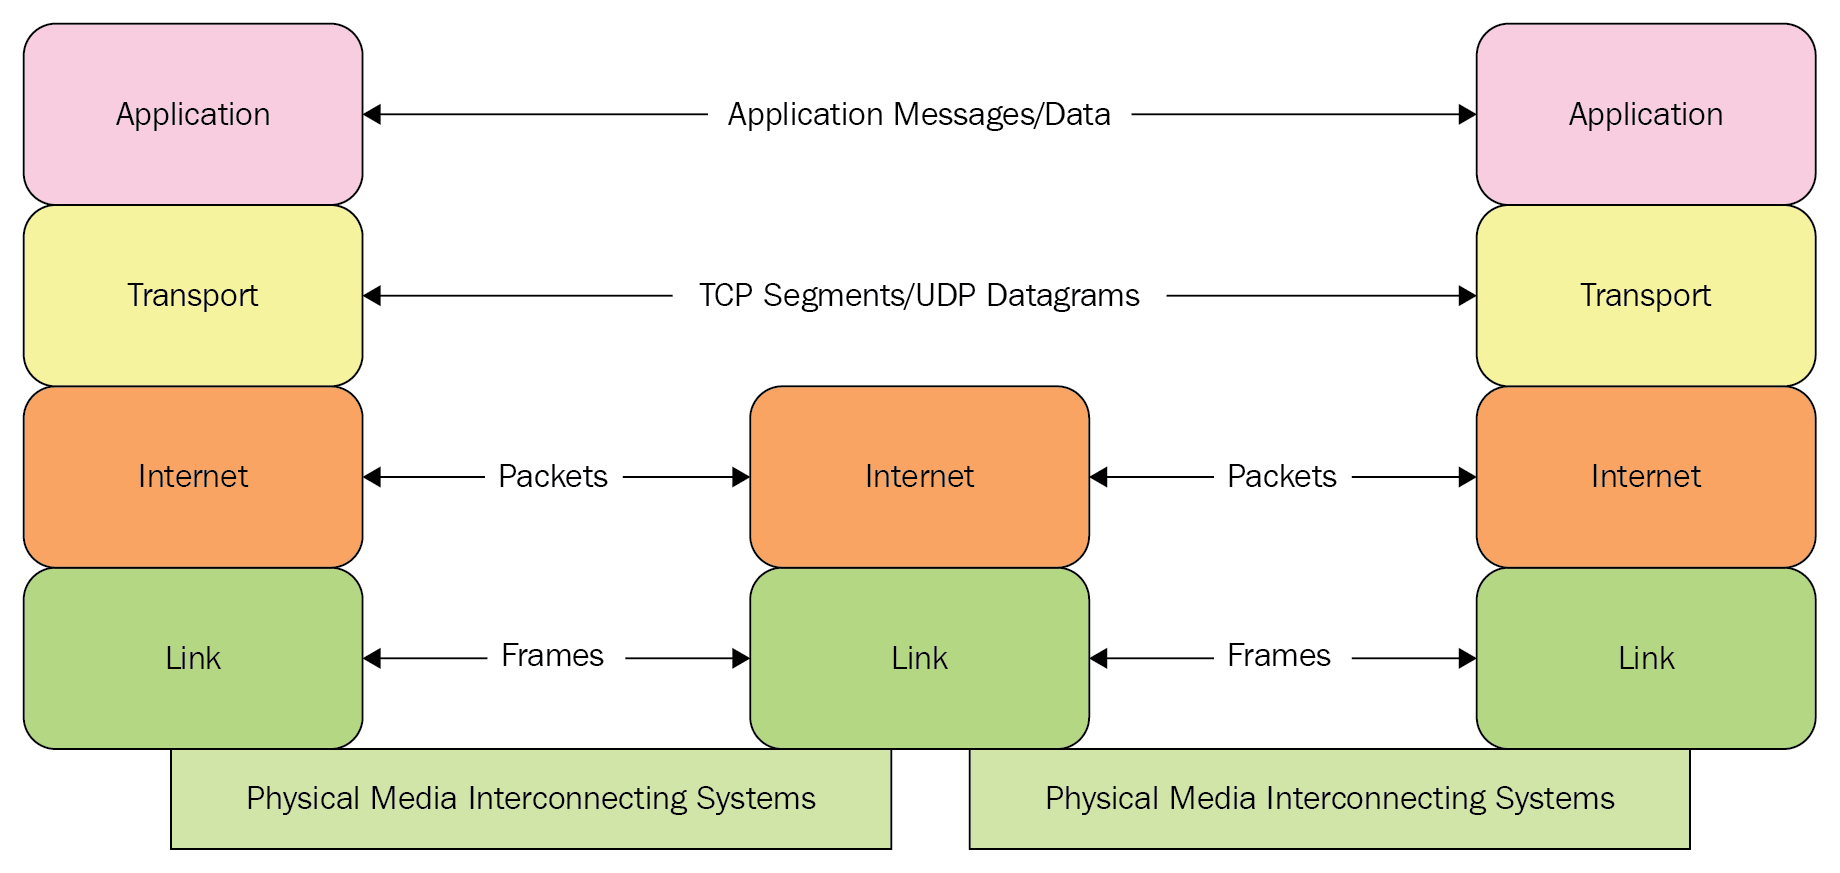 this preceding diagram combines all of the concepts we discussed  previously  for a host to transmit messages, application messages/data are  encapsulated